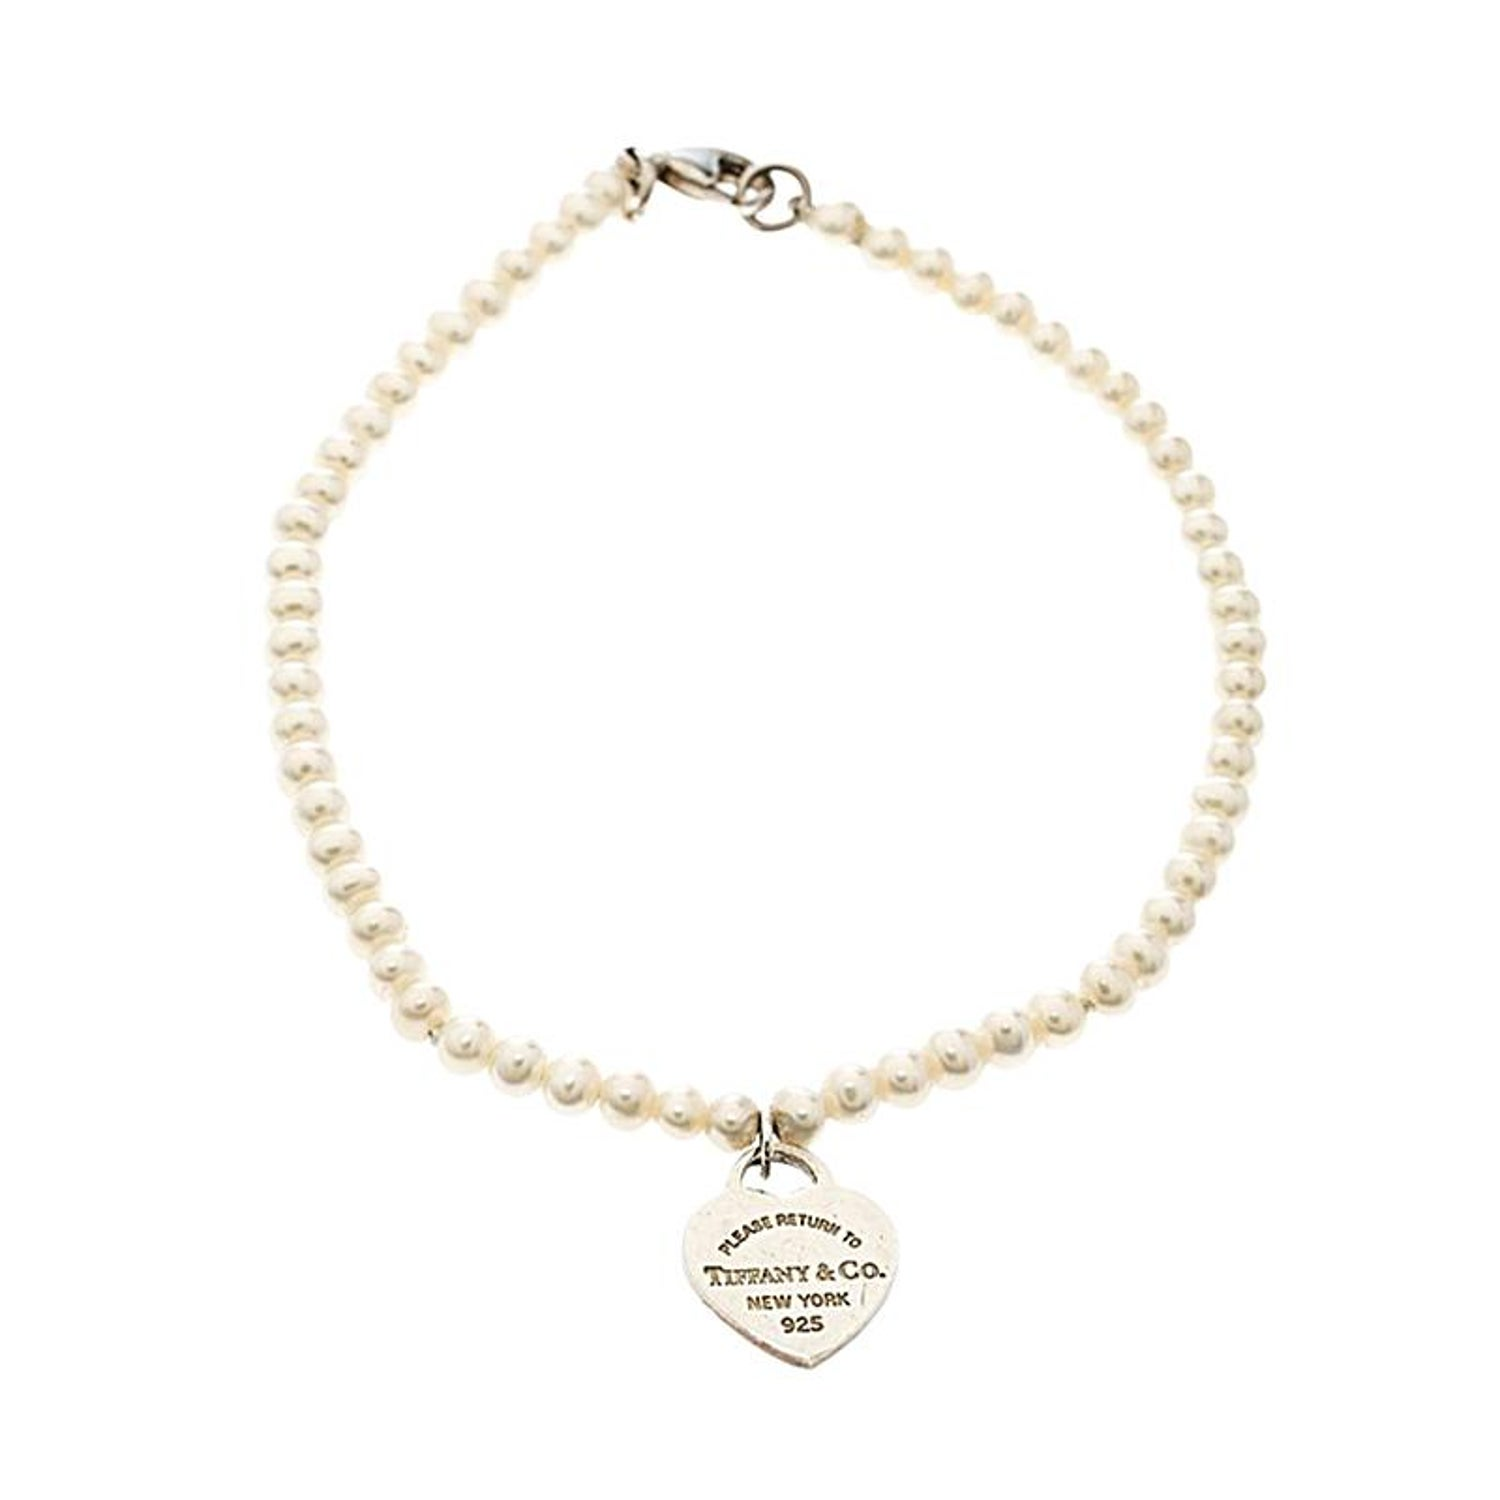 97d6c8594 Tiffany and Co. Return To Tiffany Pearl Silver Heart Tag Bracelet For Sale  at 1stdibs